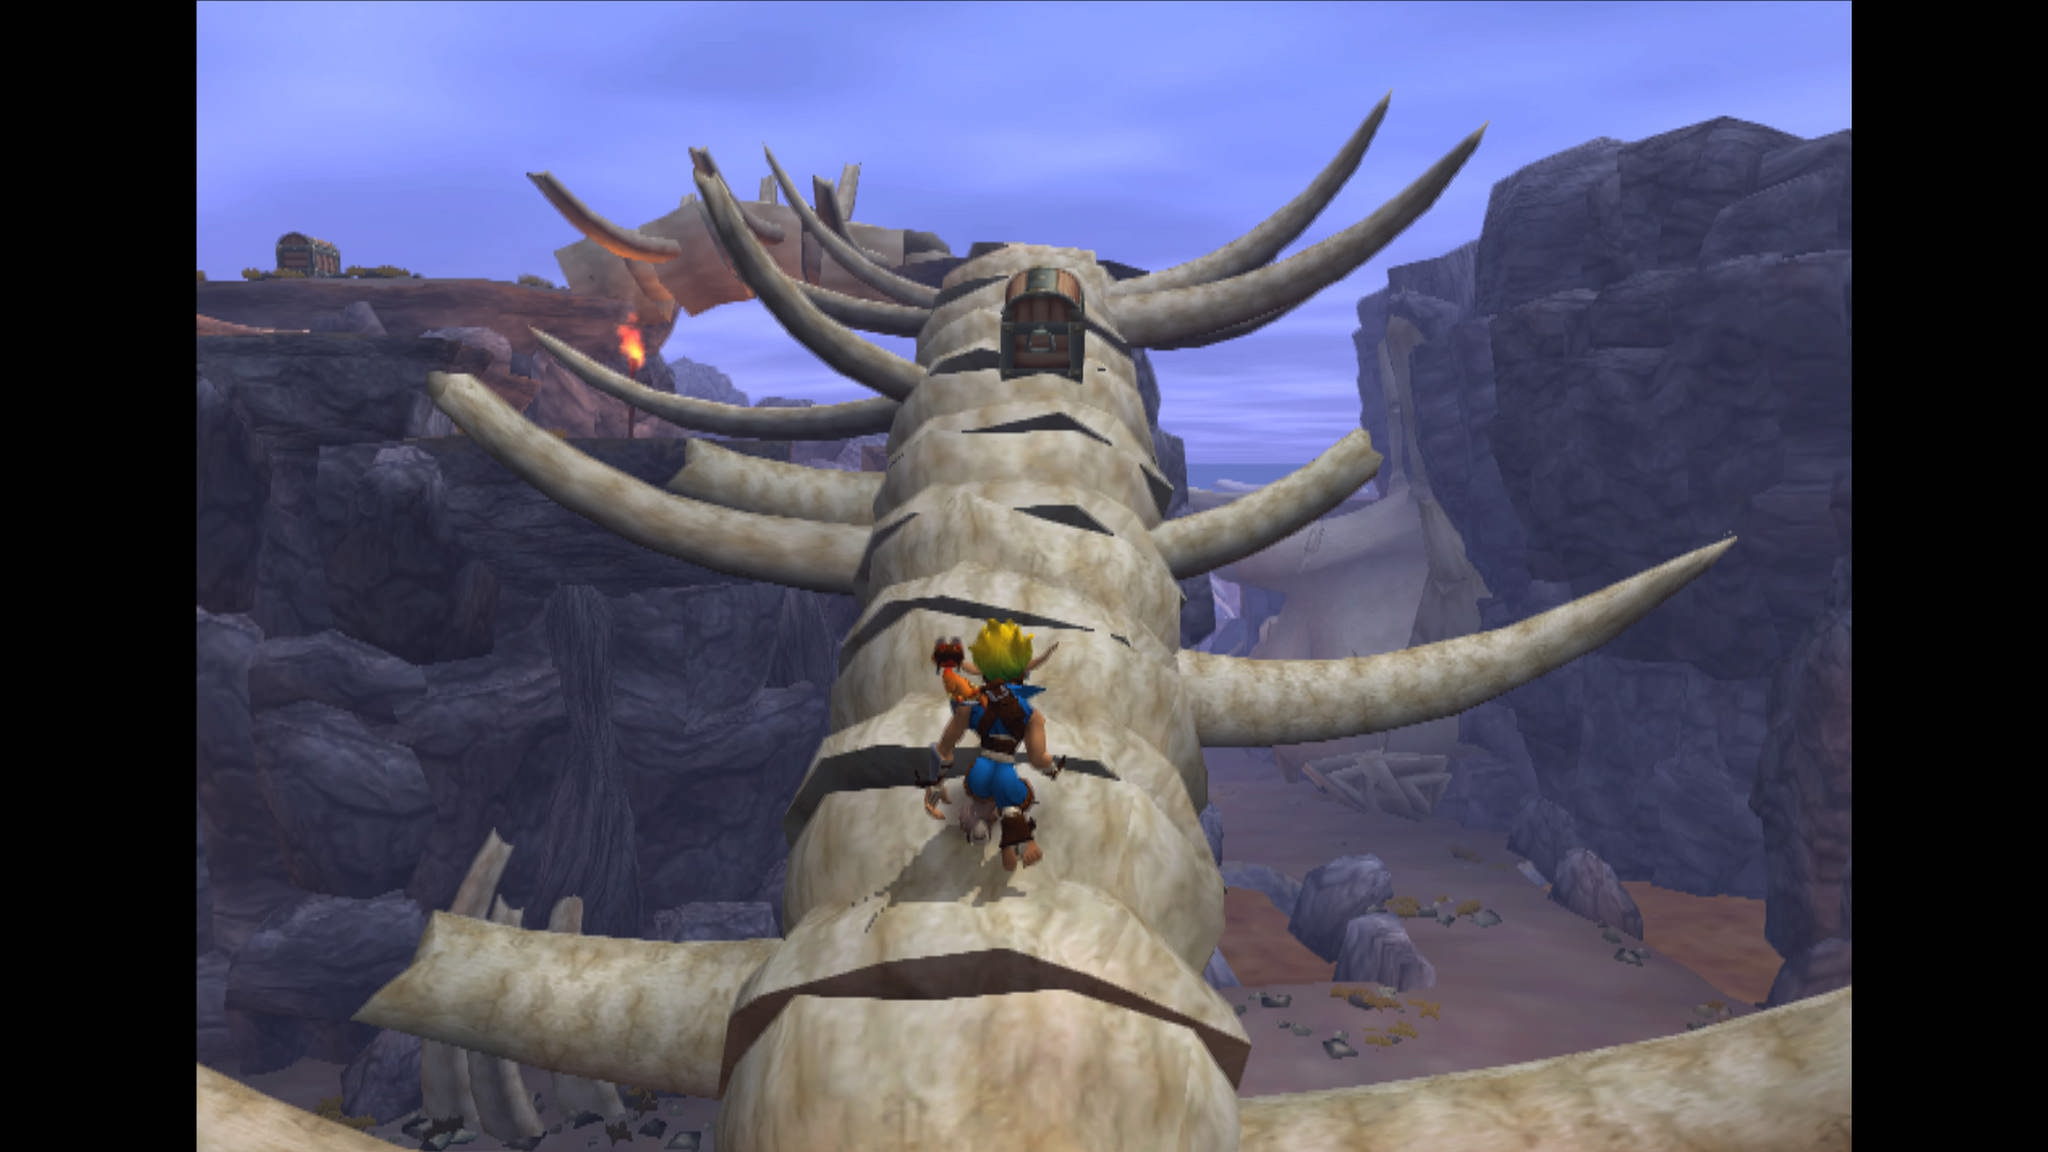 Jak And Daxter Playstation 2 Classics Are Coming To Playstation 4